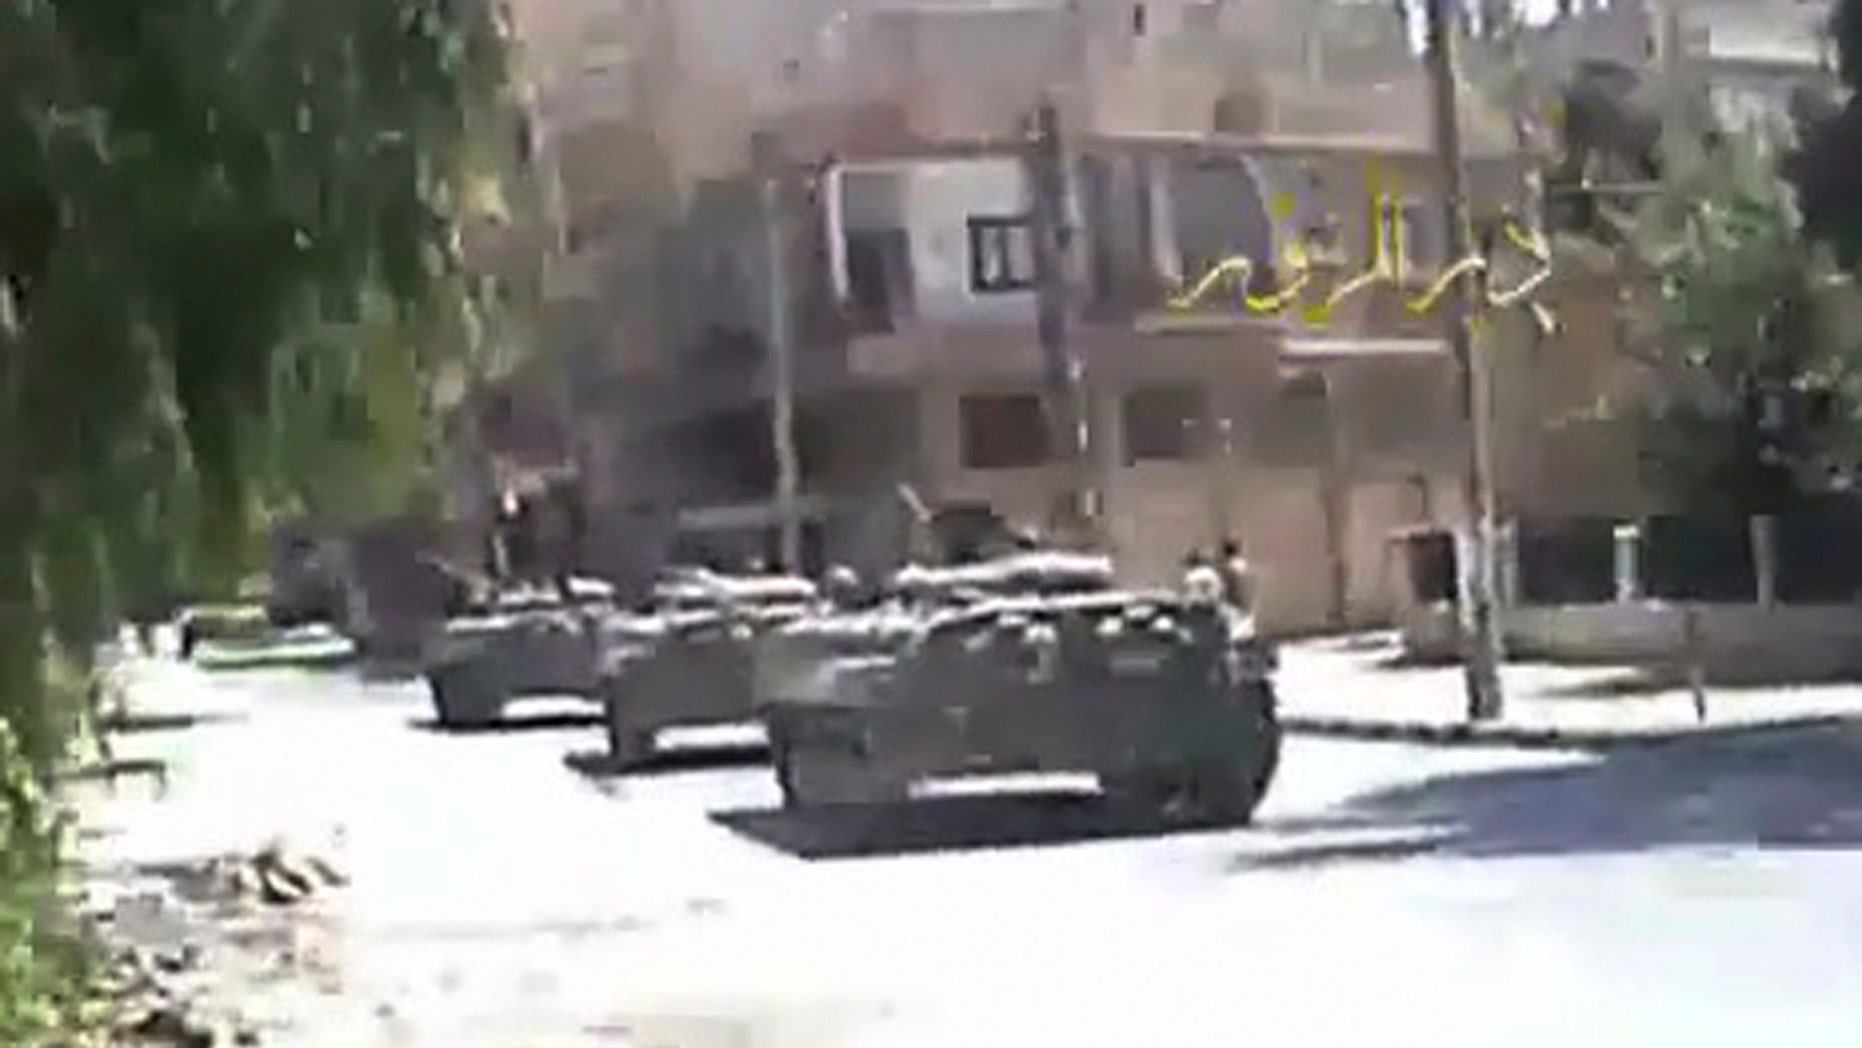 Aug. 10: In this image made from amateur video released by DPN (Deir el-Zour Press news) and accessed via The Associated Press Television News on Wednesday, shows Syria tanks on the street in Deir el-Zour, Syria on Tuesday Aug. 9. 2011. Syrian troops seized control of the eastern flashpoint city of Deir el-Zour Wednesday following intense shelling and gunfire, an activist said, as the international community intensified its pressure on the country's president to end the deadly crackdown.